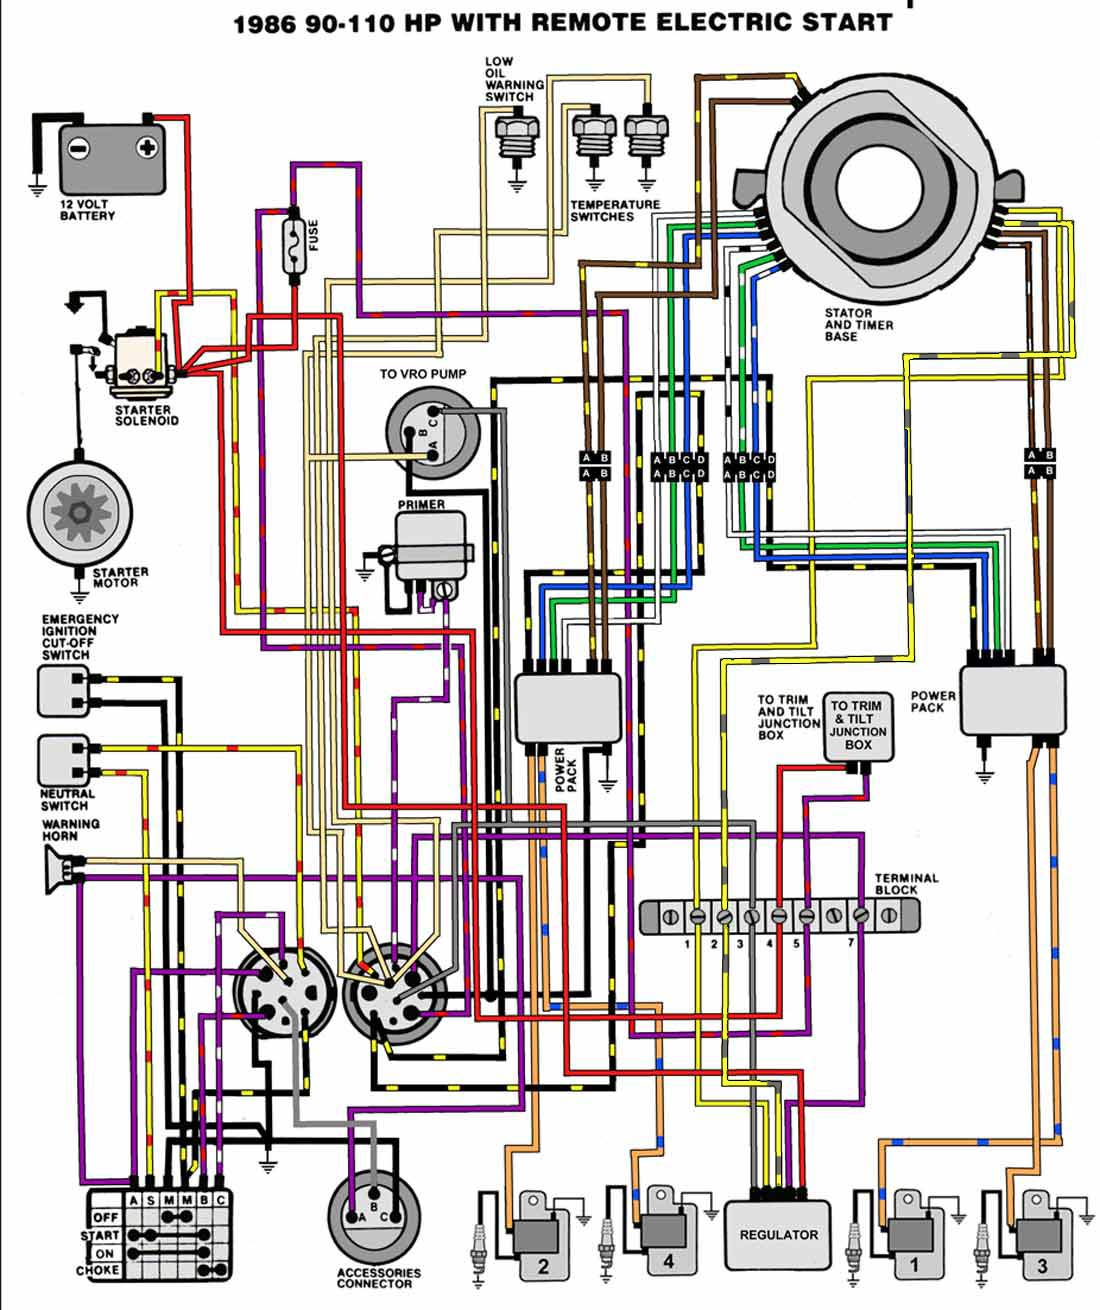 EVINRUDE JOHNSON Outboard Wiring Diagrams -- MASTERTECH MARINE -- on yamaha 90 outboard wiring diagram, yamaha outboard electrical diagram, yamaha 250 bear tracker wiring-diagram, yamaha gas golf cart wiring diagram, yamaha 150 outboard wiring diagram, yamaha outboard tach wiring diagram, yamaha outboard gauge wiring diagram, yamaha 225 outboard wiring diagram, yamaha 200 outboard wiring diagram, 1990 yamaha 115 wiring diagram, yamaha qt50 wiring diagrams, yamaha atv wiring diagram, yamaha 50 hp outboard wiring diagram, yamaha 90 hp outboard diagram, yamaha electric golf cart wiring diagram, yamaha outboard ignition wiring diagram, yamaha outboard control wiring diagram, yamaha outboard tachometer wiring, yamaha outboard tachometer installation, yamaha outboard parts diagram,